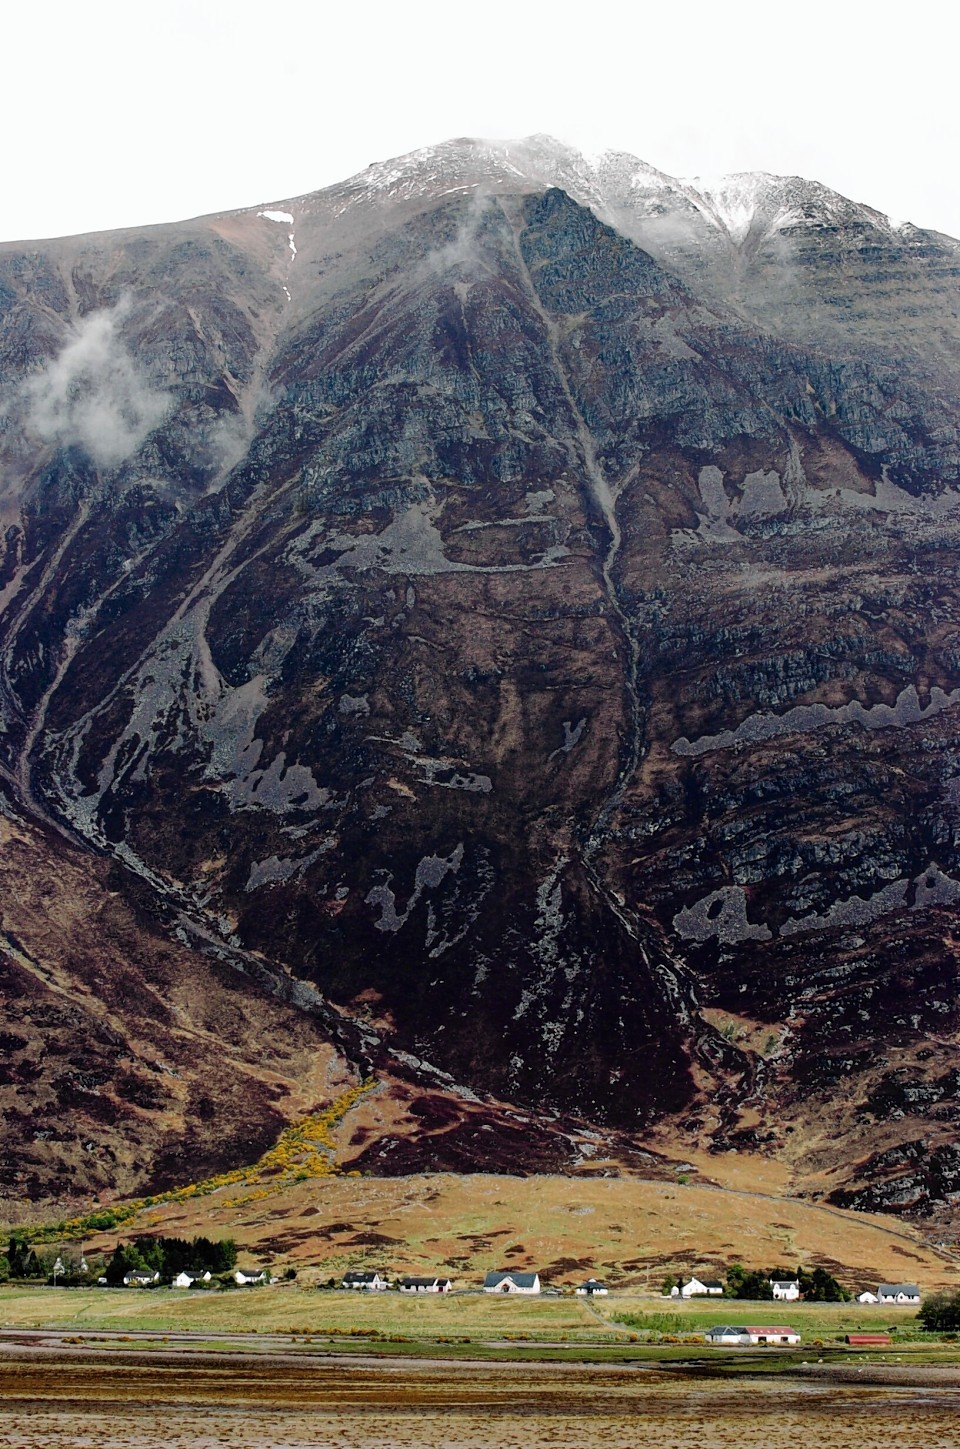 The accident happened on the Liathach area of Glen Torridon